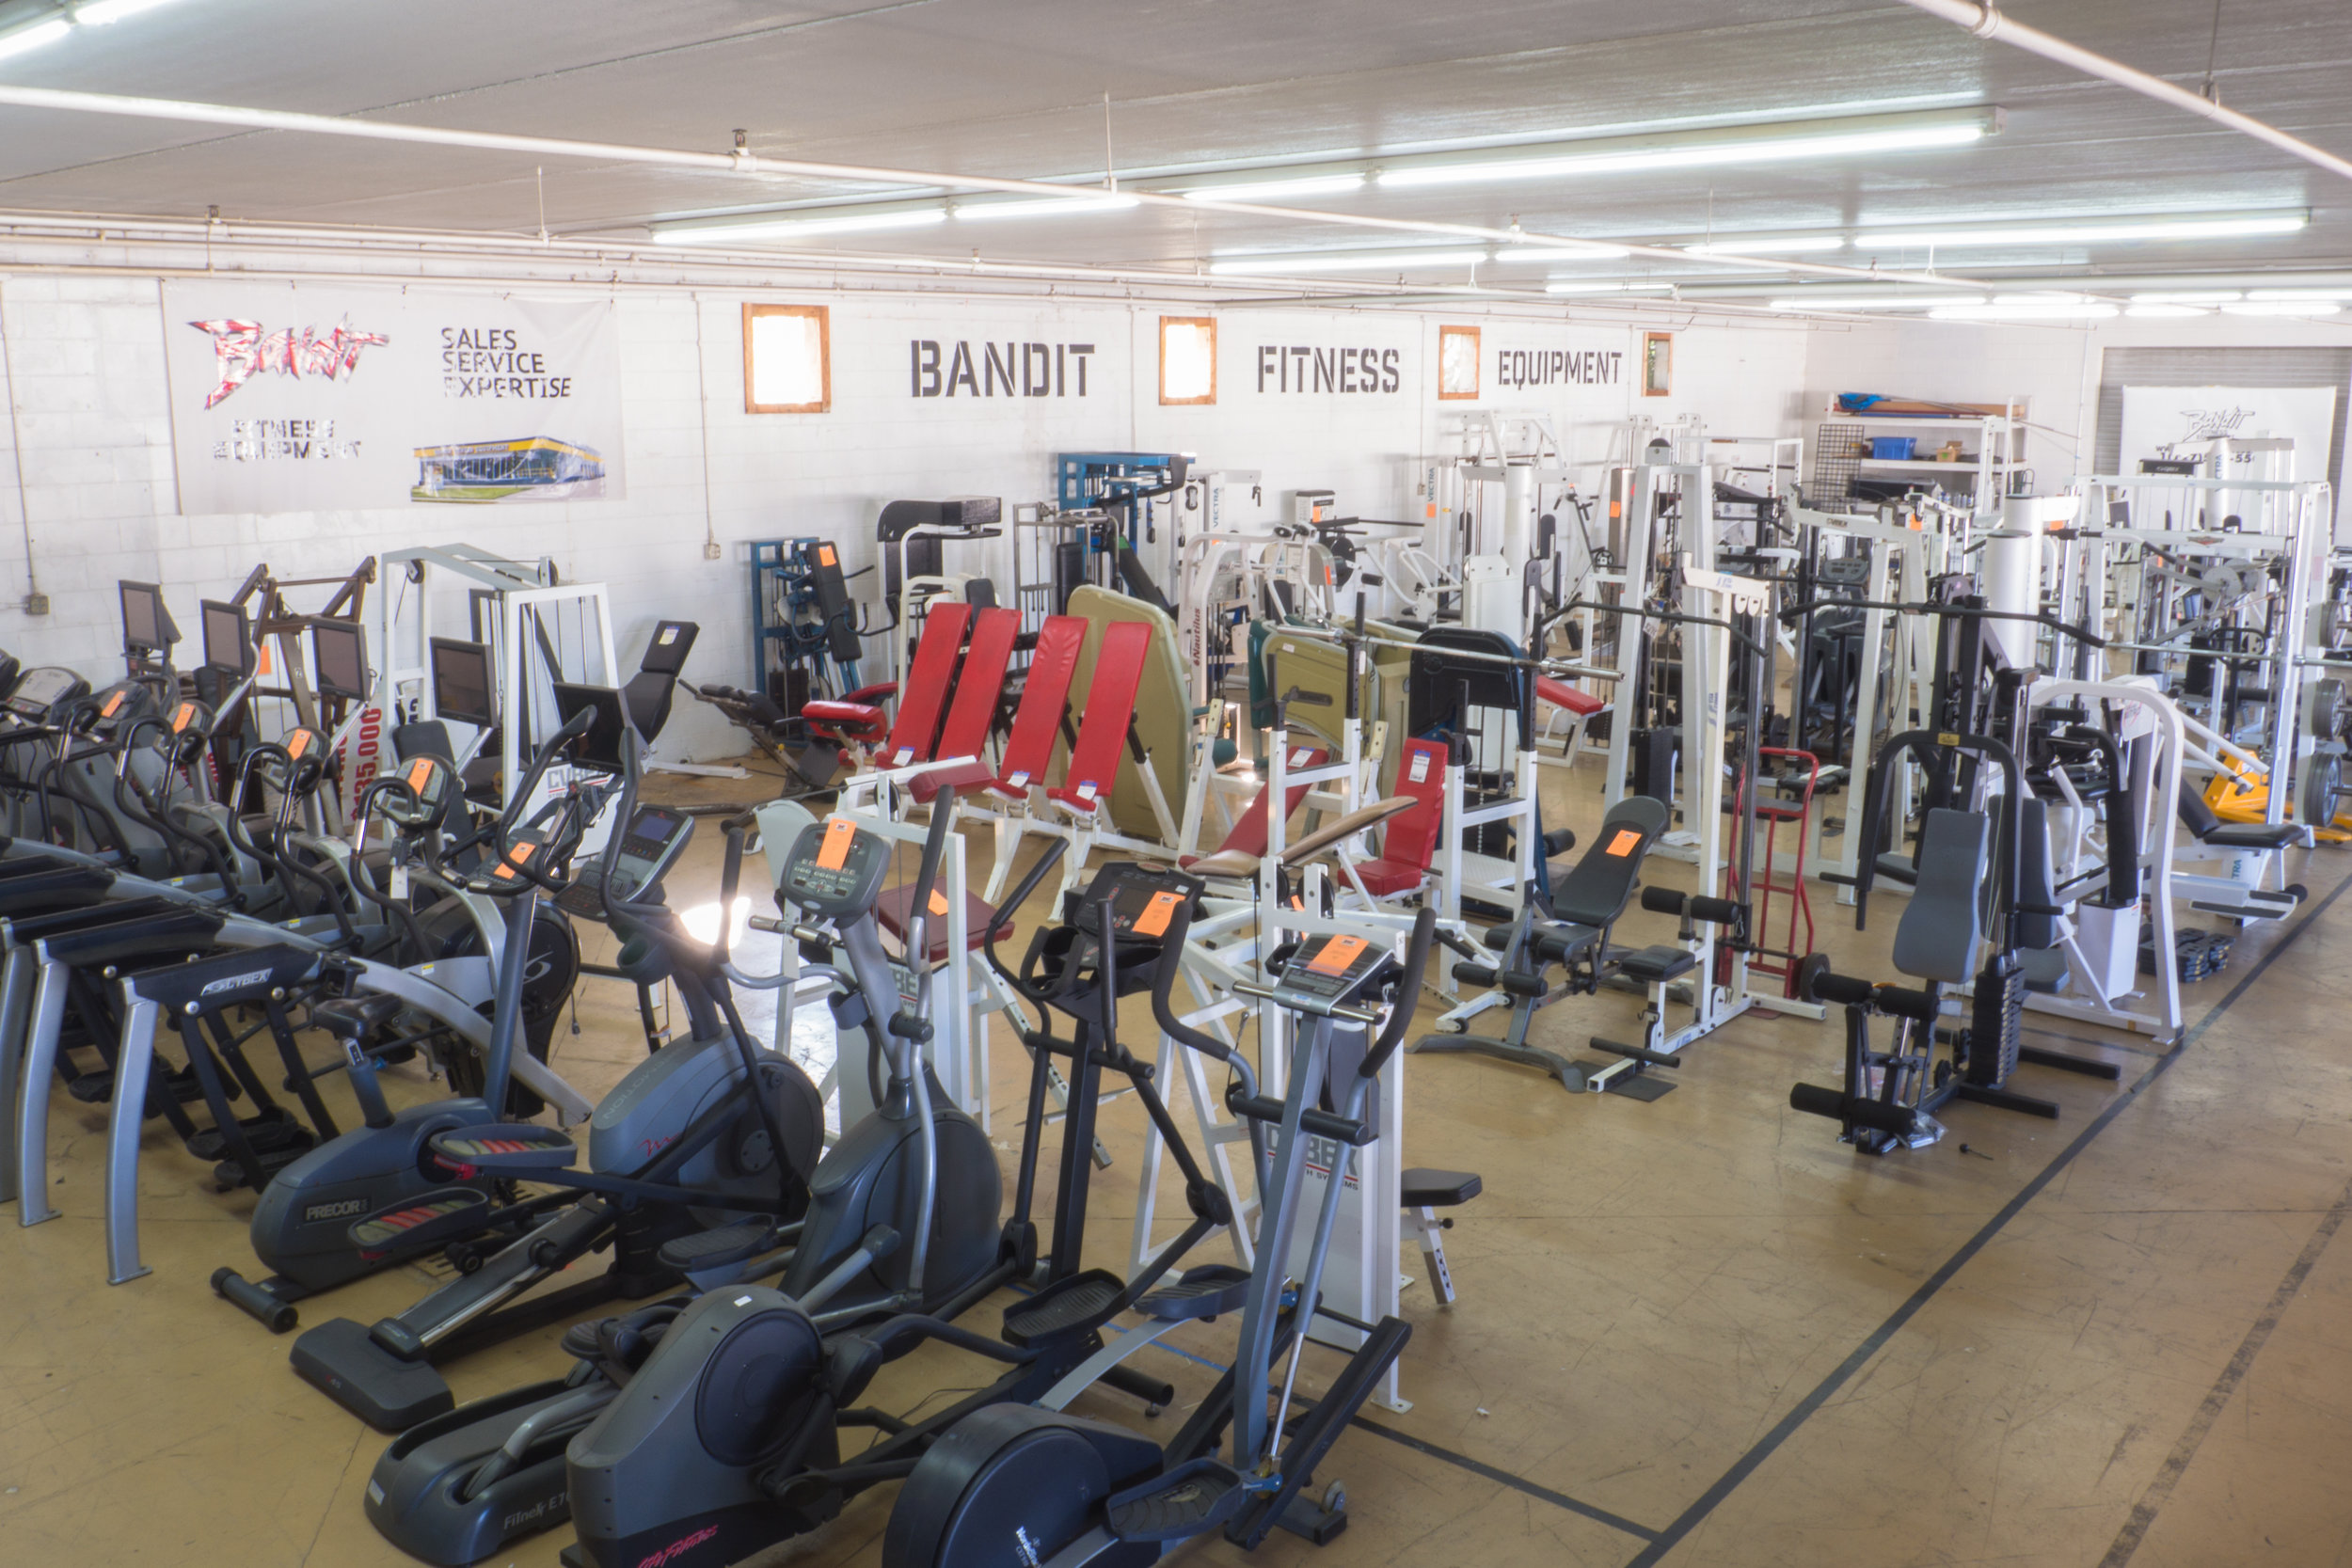 Shop New or used - One of the big advantages to shopping with us is you can find a huge selection of new and preowned equipment, getting the best bang-for-your-buck possible.